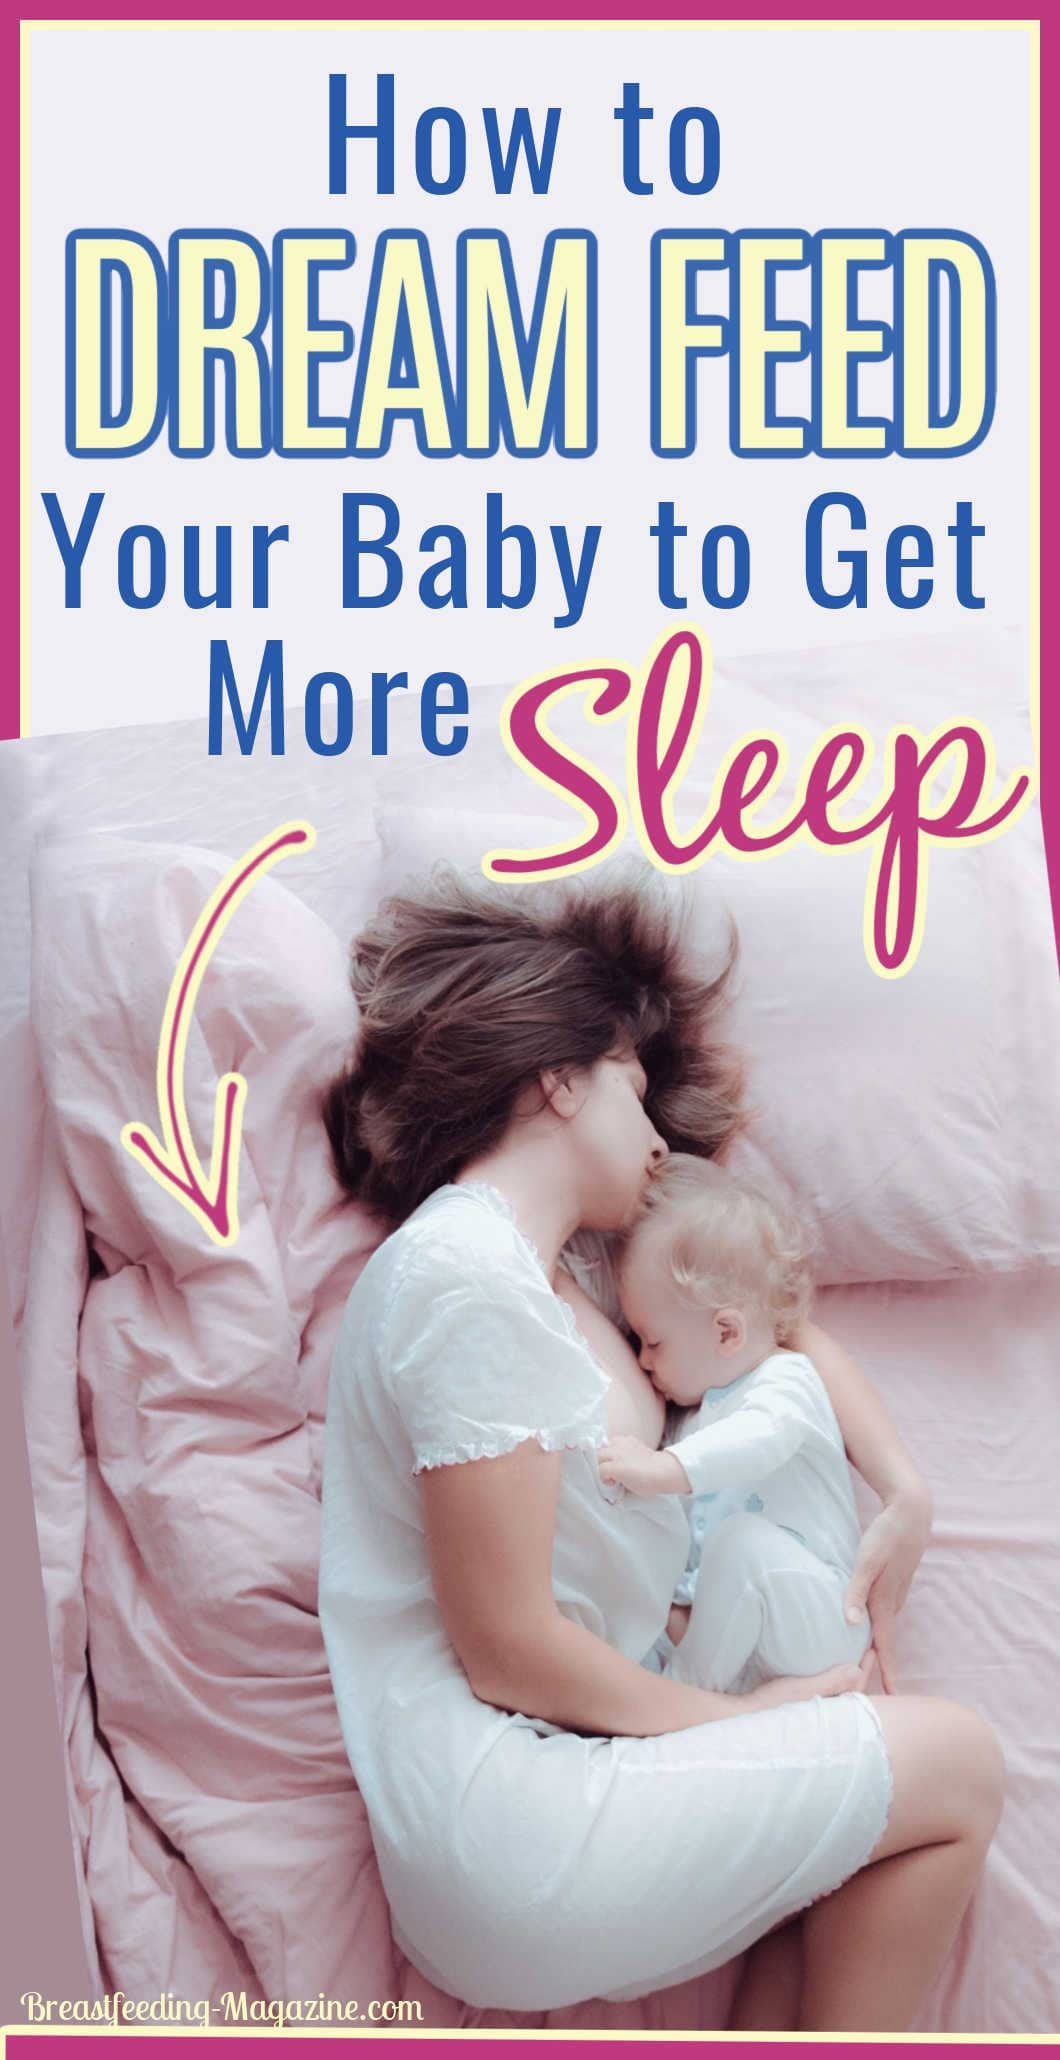 How to Dream Feed Your Baby